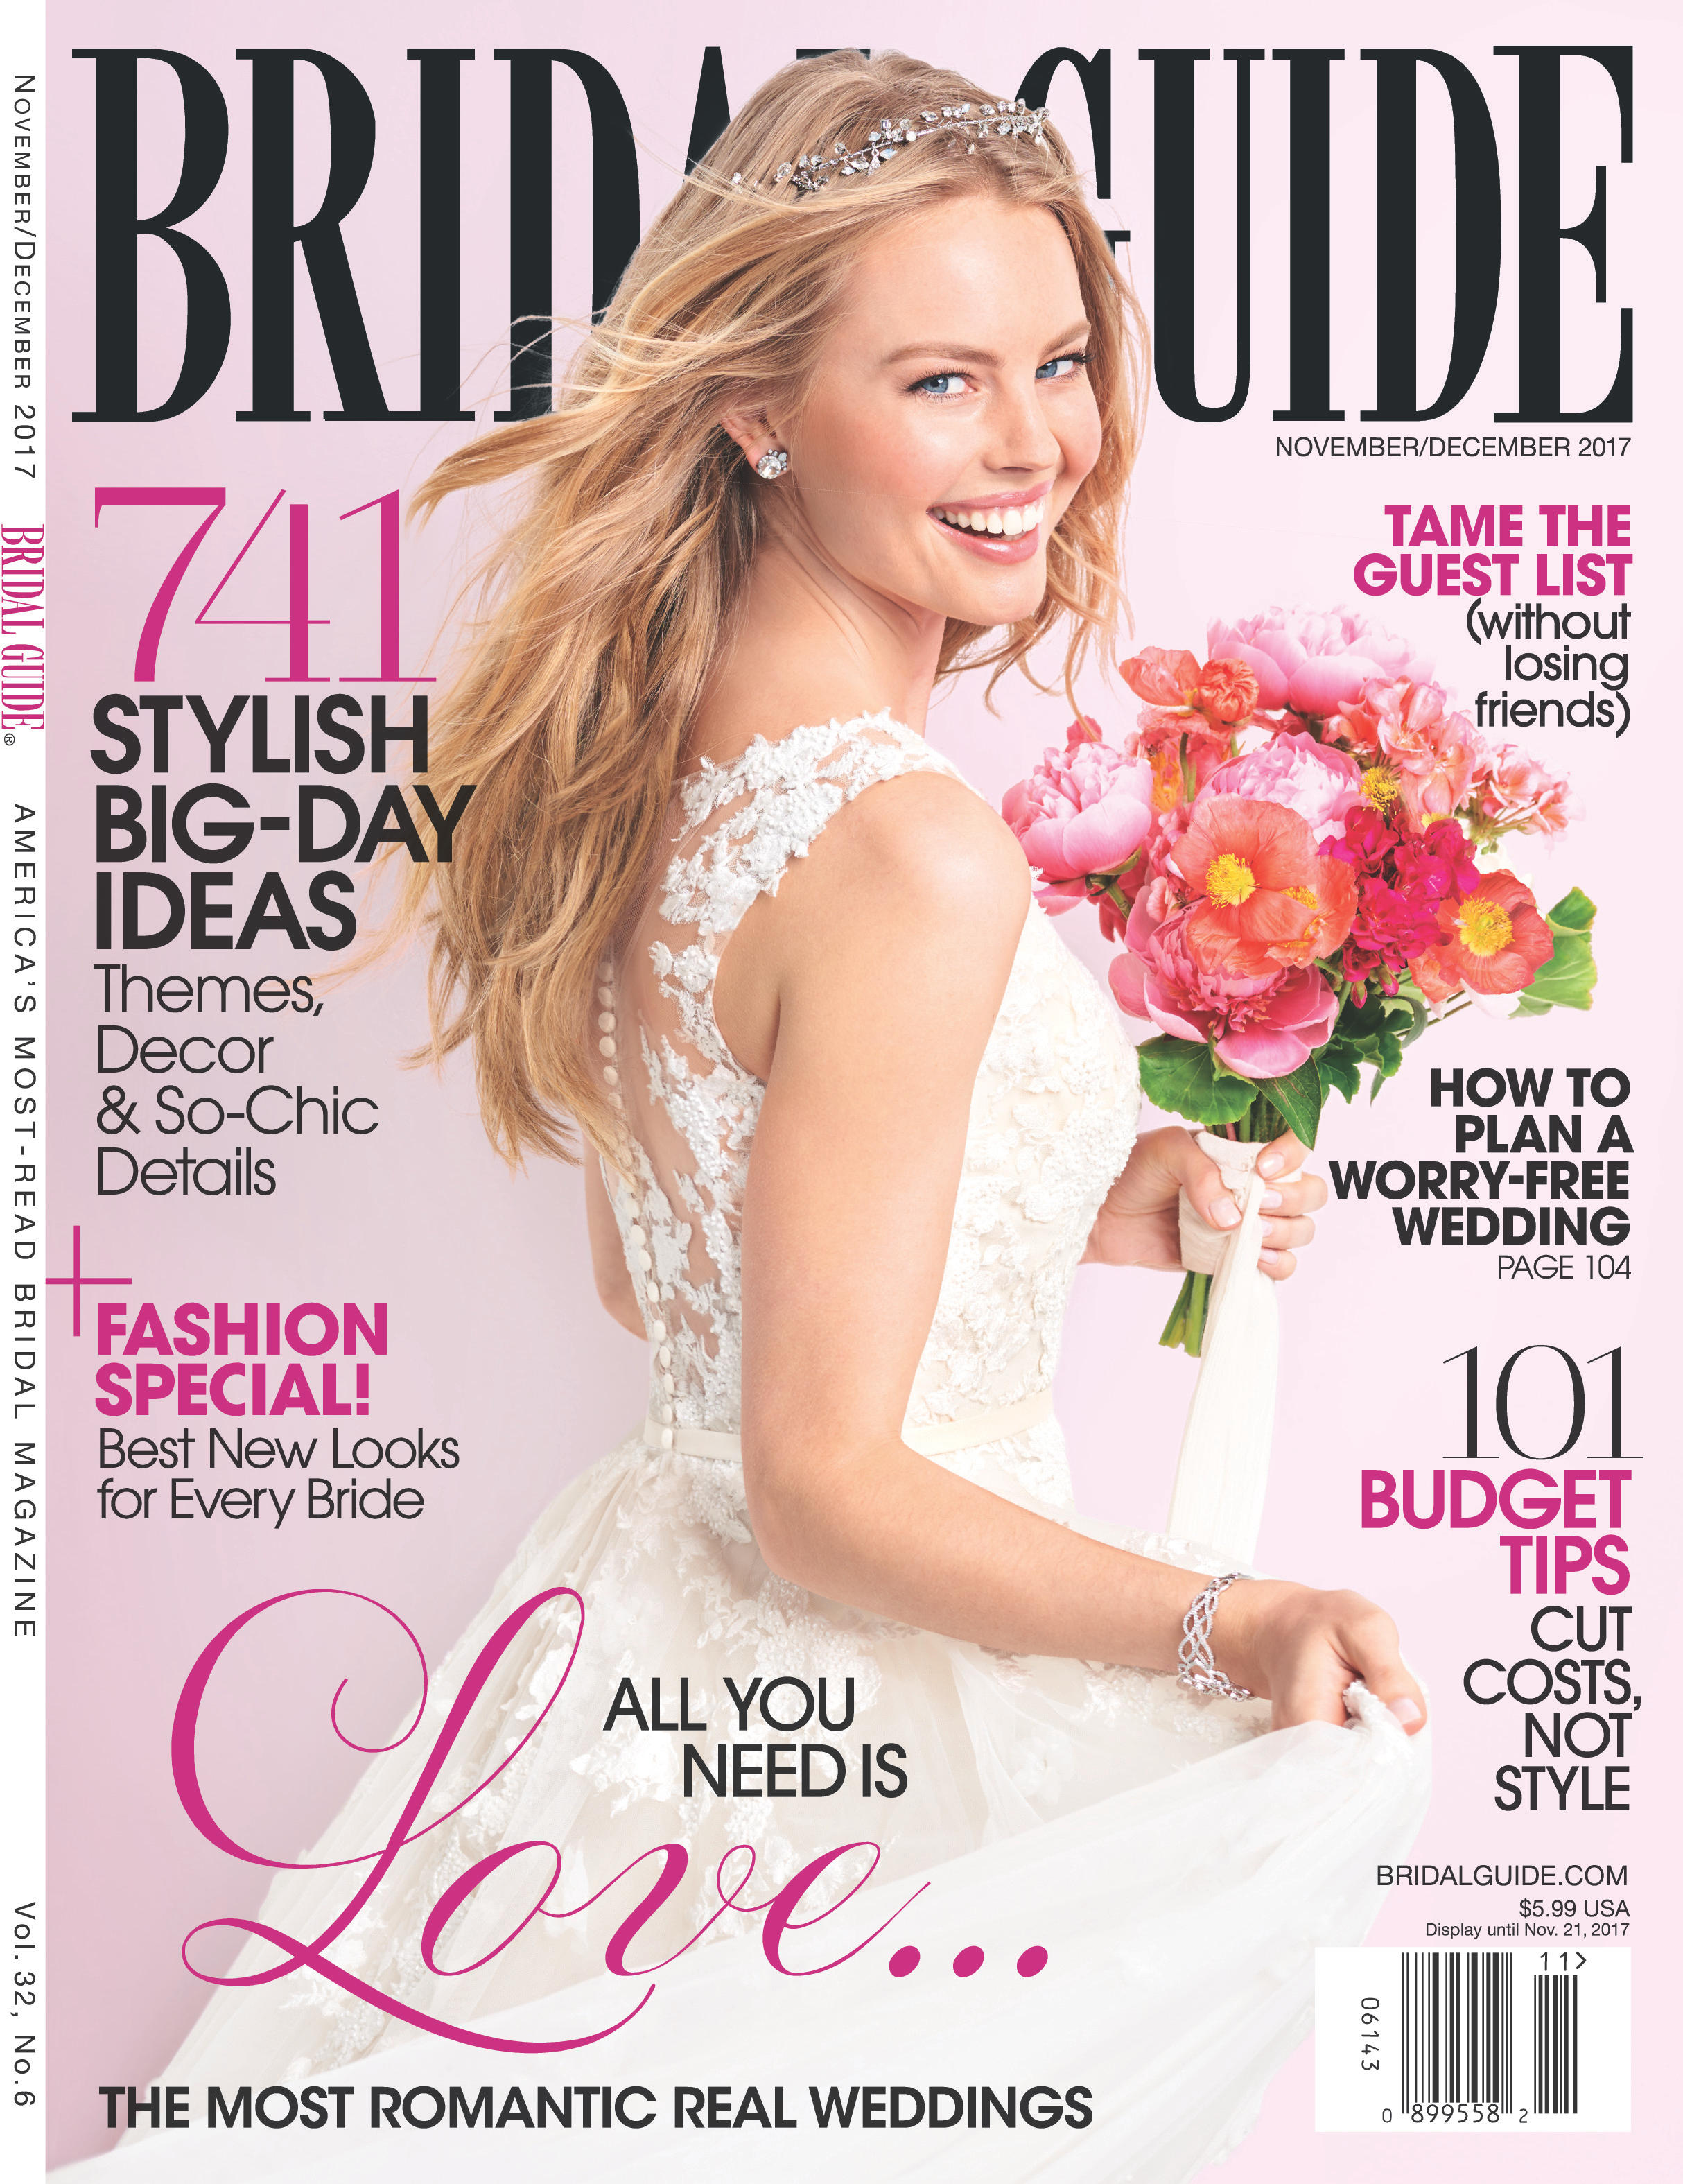 MLE Featured in Bridal Guide Magazine | Winter Ranch Wedding | Fairytale Wedding | Michelle Leo Events | Utah Event Planner and Designer